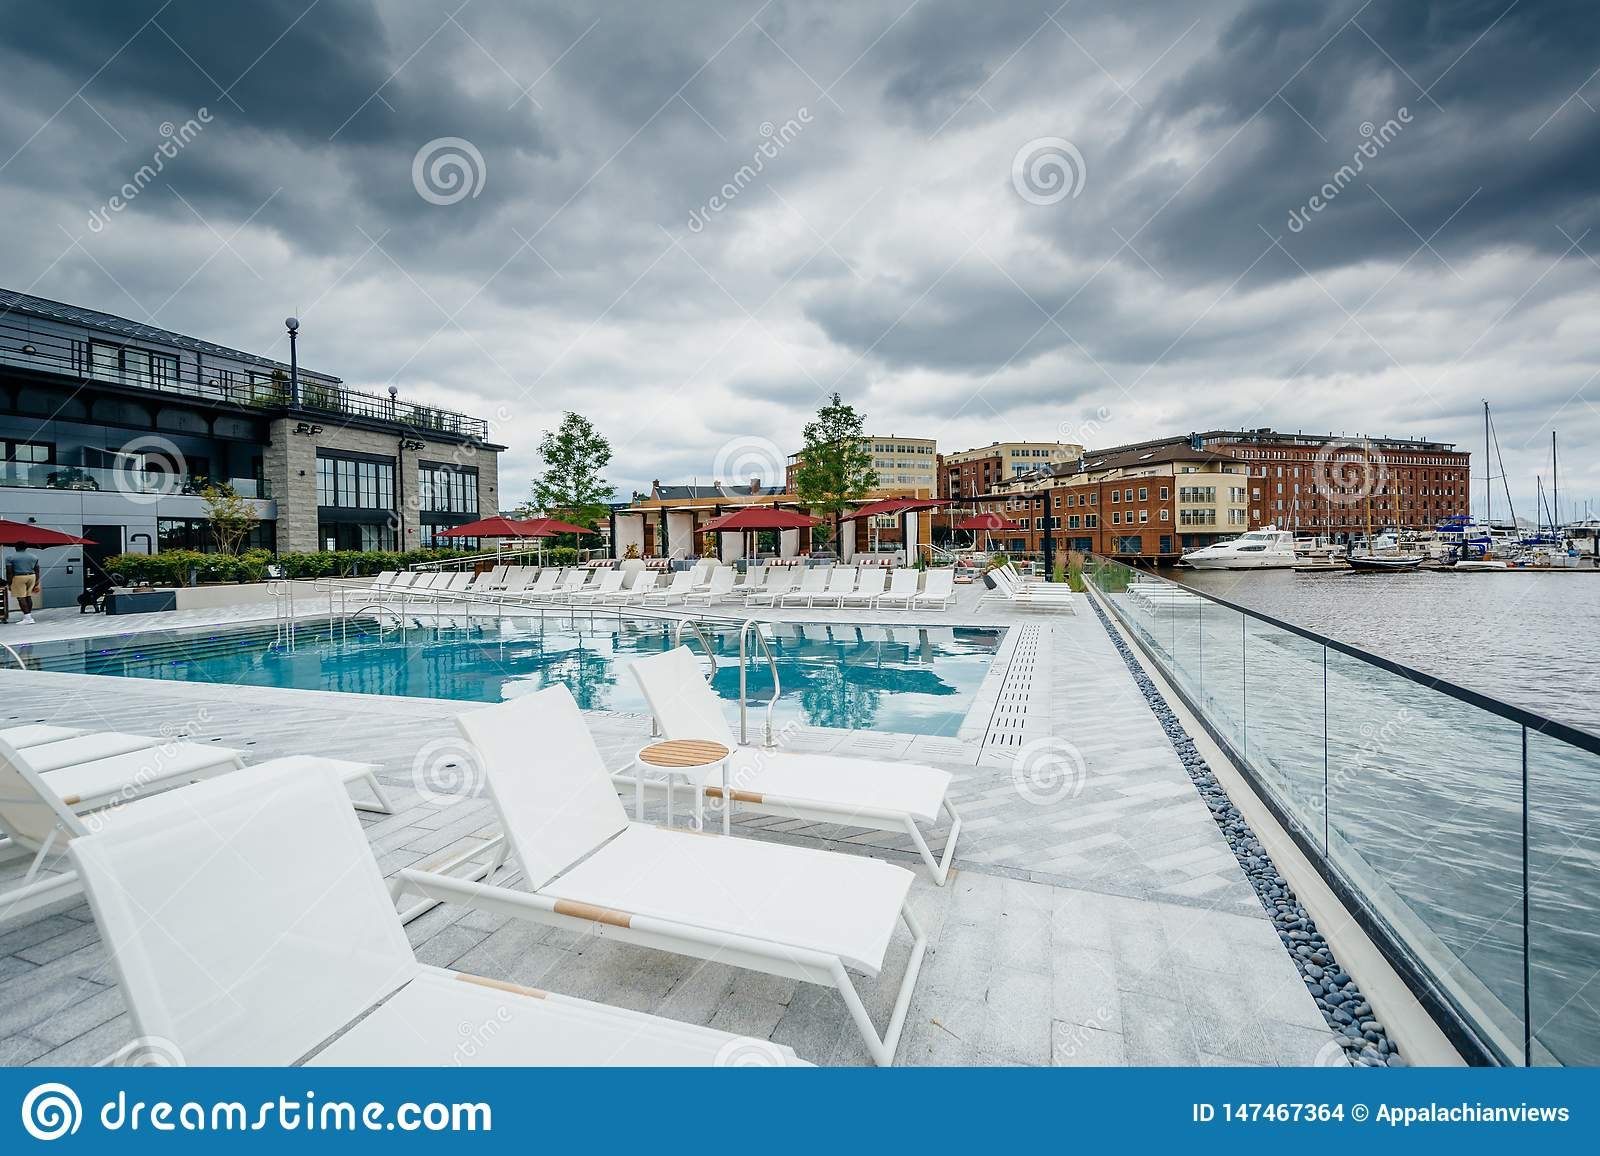 The pool at the Sagamore Pendry Hotel in Fells Point, Baltimore, Maryland